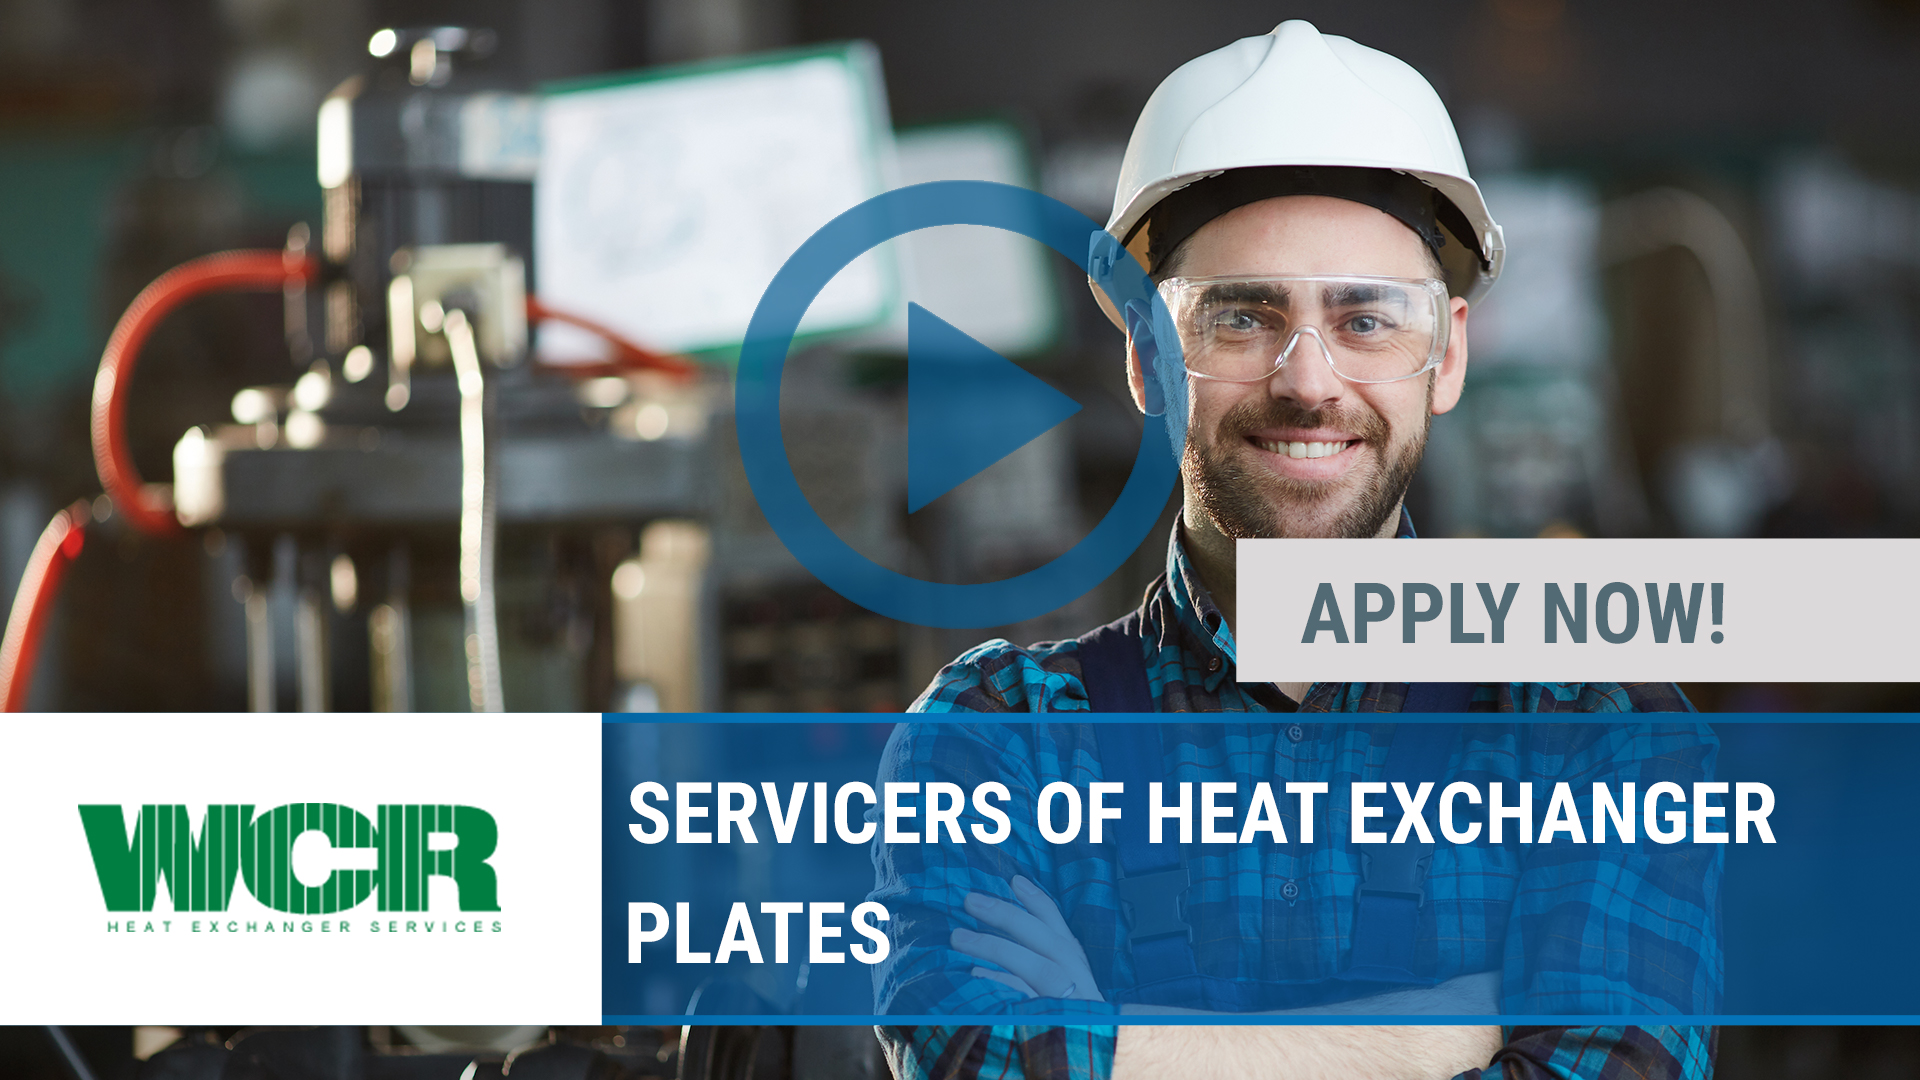 Watch our careers video for available job opening SERVICERS OF HEAT EXCHANGER PLATES in Peoria, IL